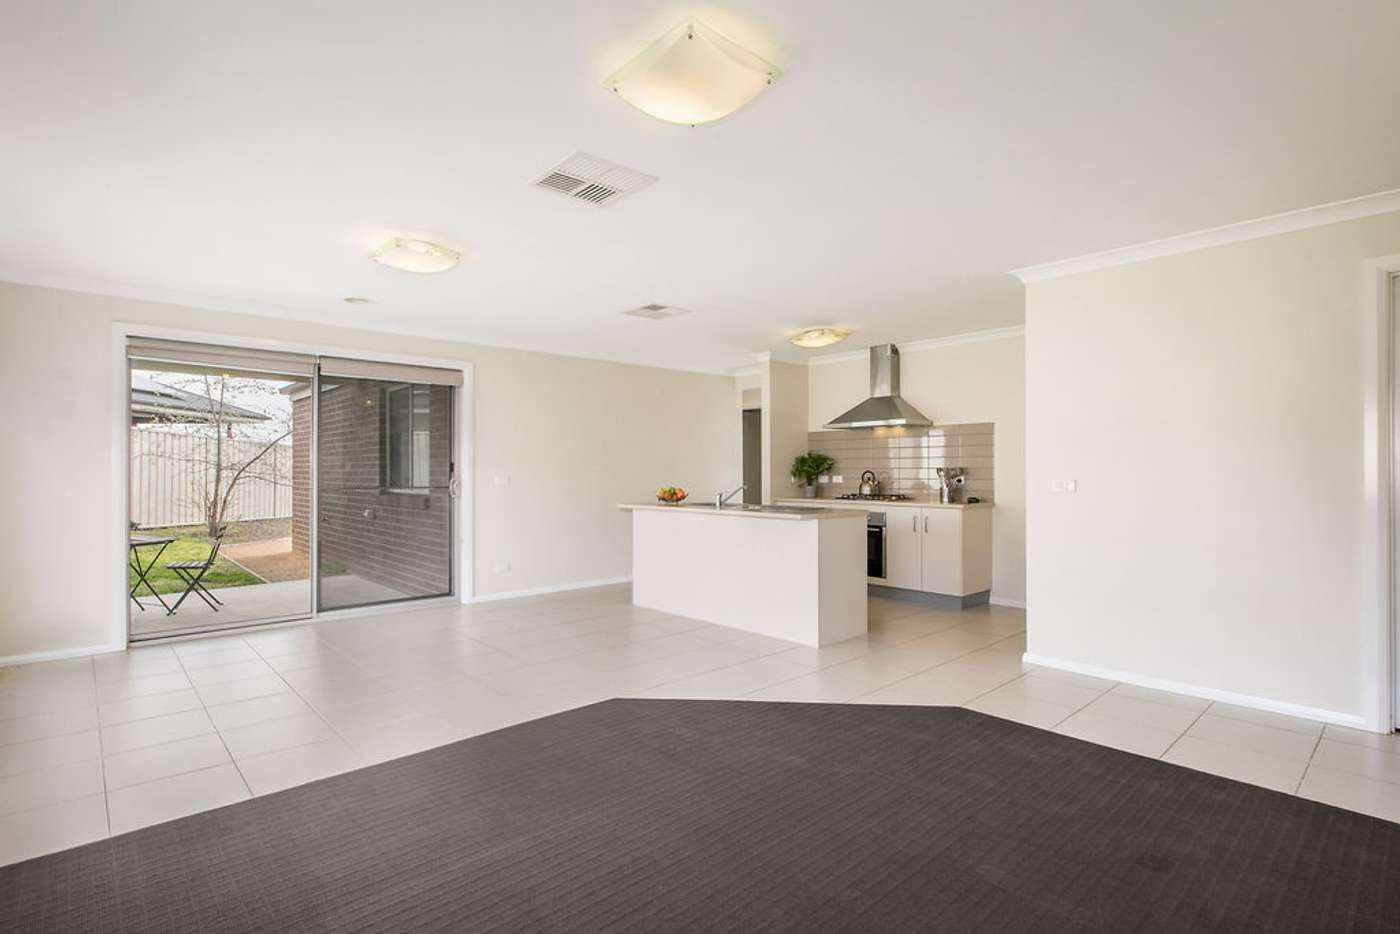 Fifth view of Homely house listing, 24 Jacka Street, Wodonga VIC 3690